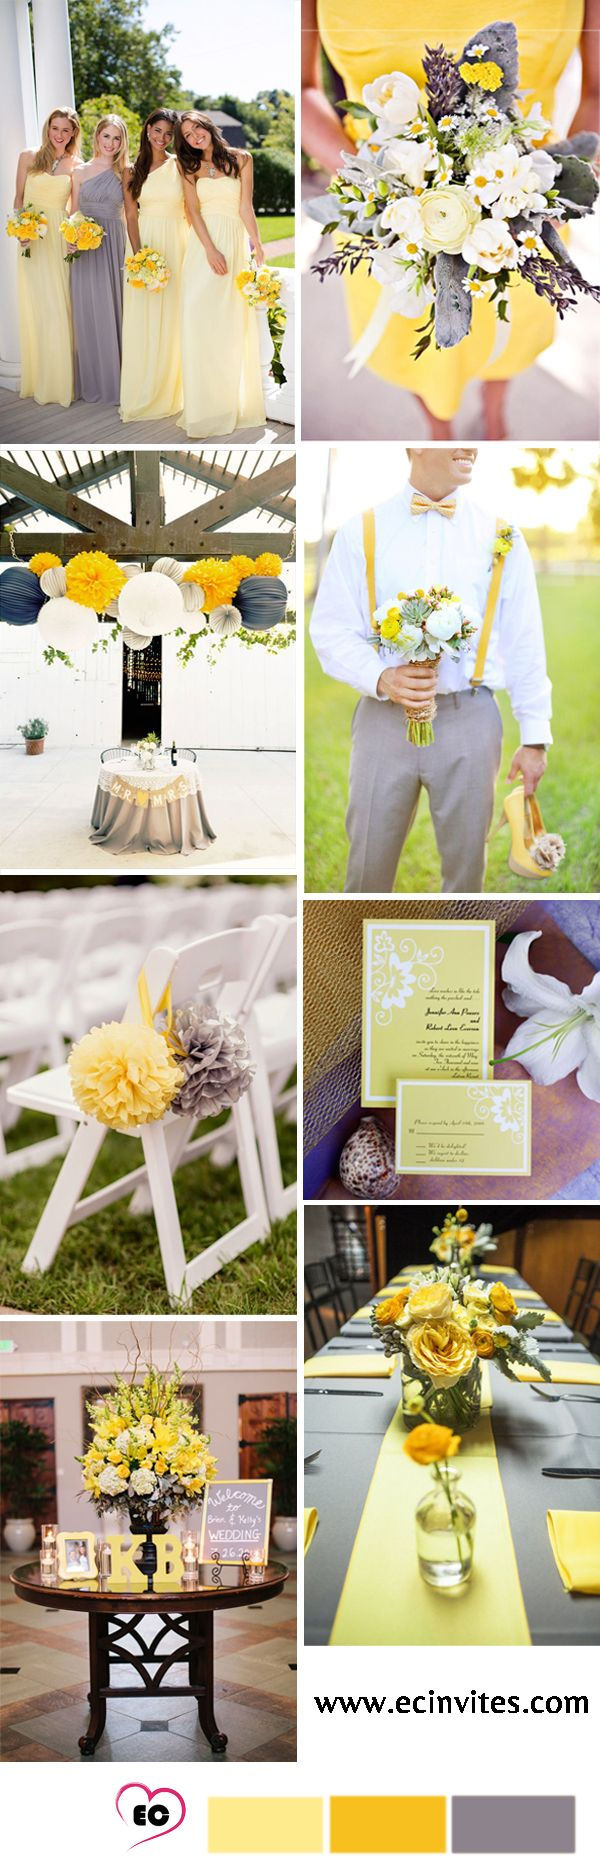 Wedding decorations yellow and gray   best Dream Wedding images on Pinterest  Weddings Casamento and